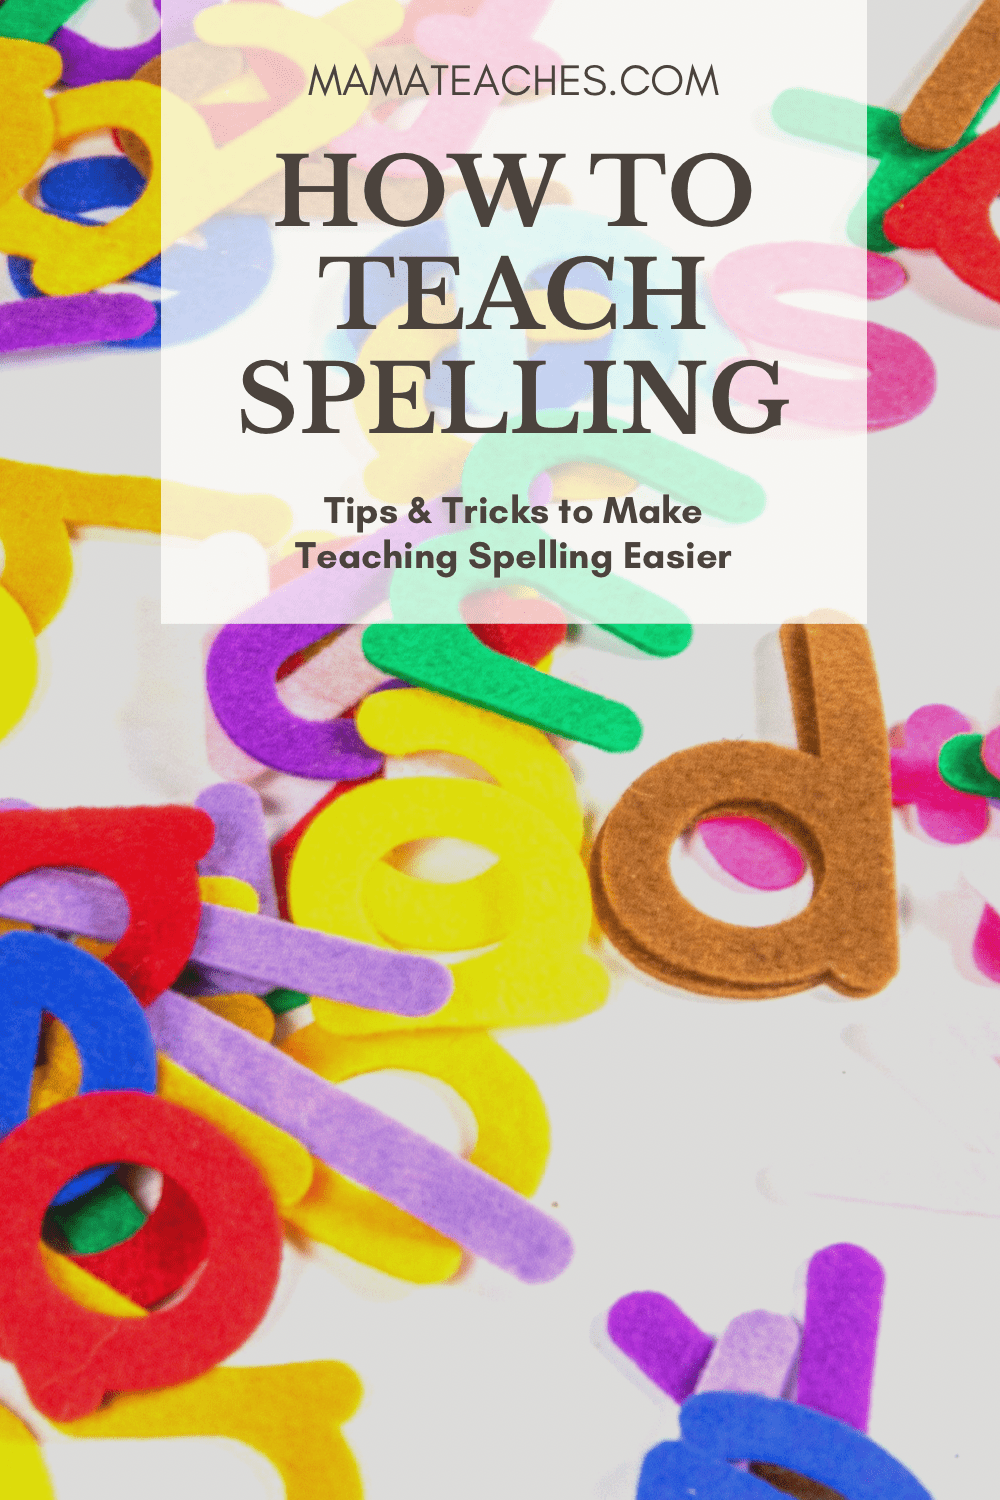 Fun Ways for Teaching Spelling - How to Teach Spelling